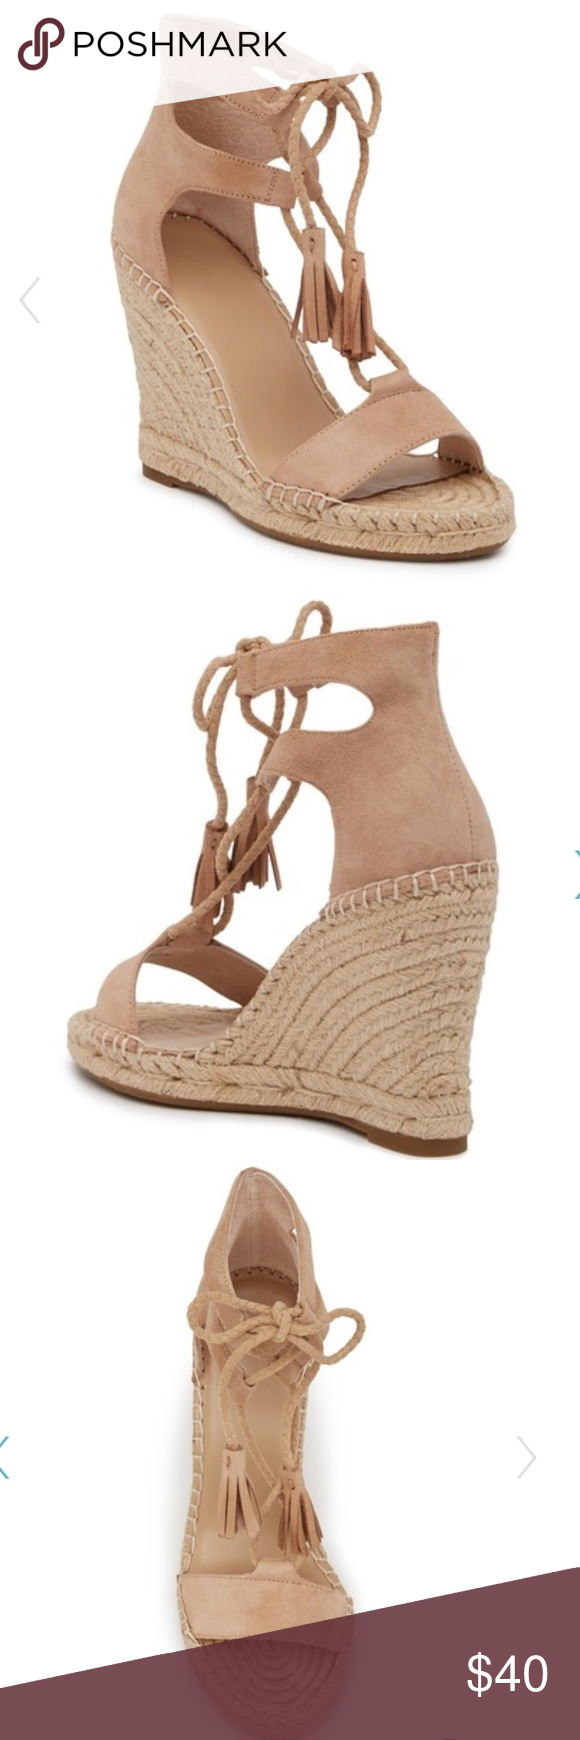 89f5c6dcf2e Joie delilah Espadrille Suede Wedge Sandal In excellent used condition Joie  Shoes Wedges